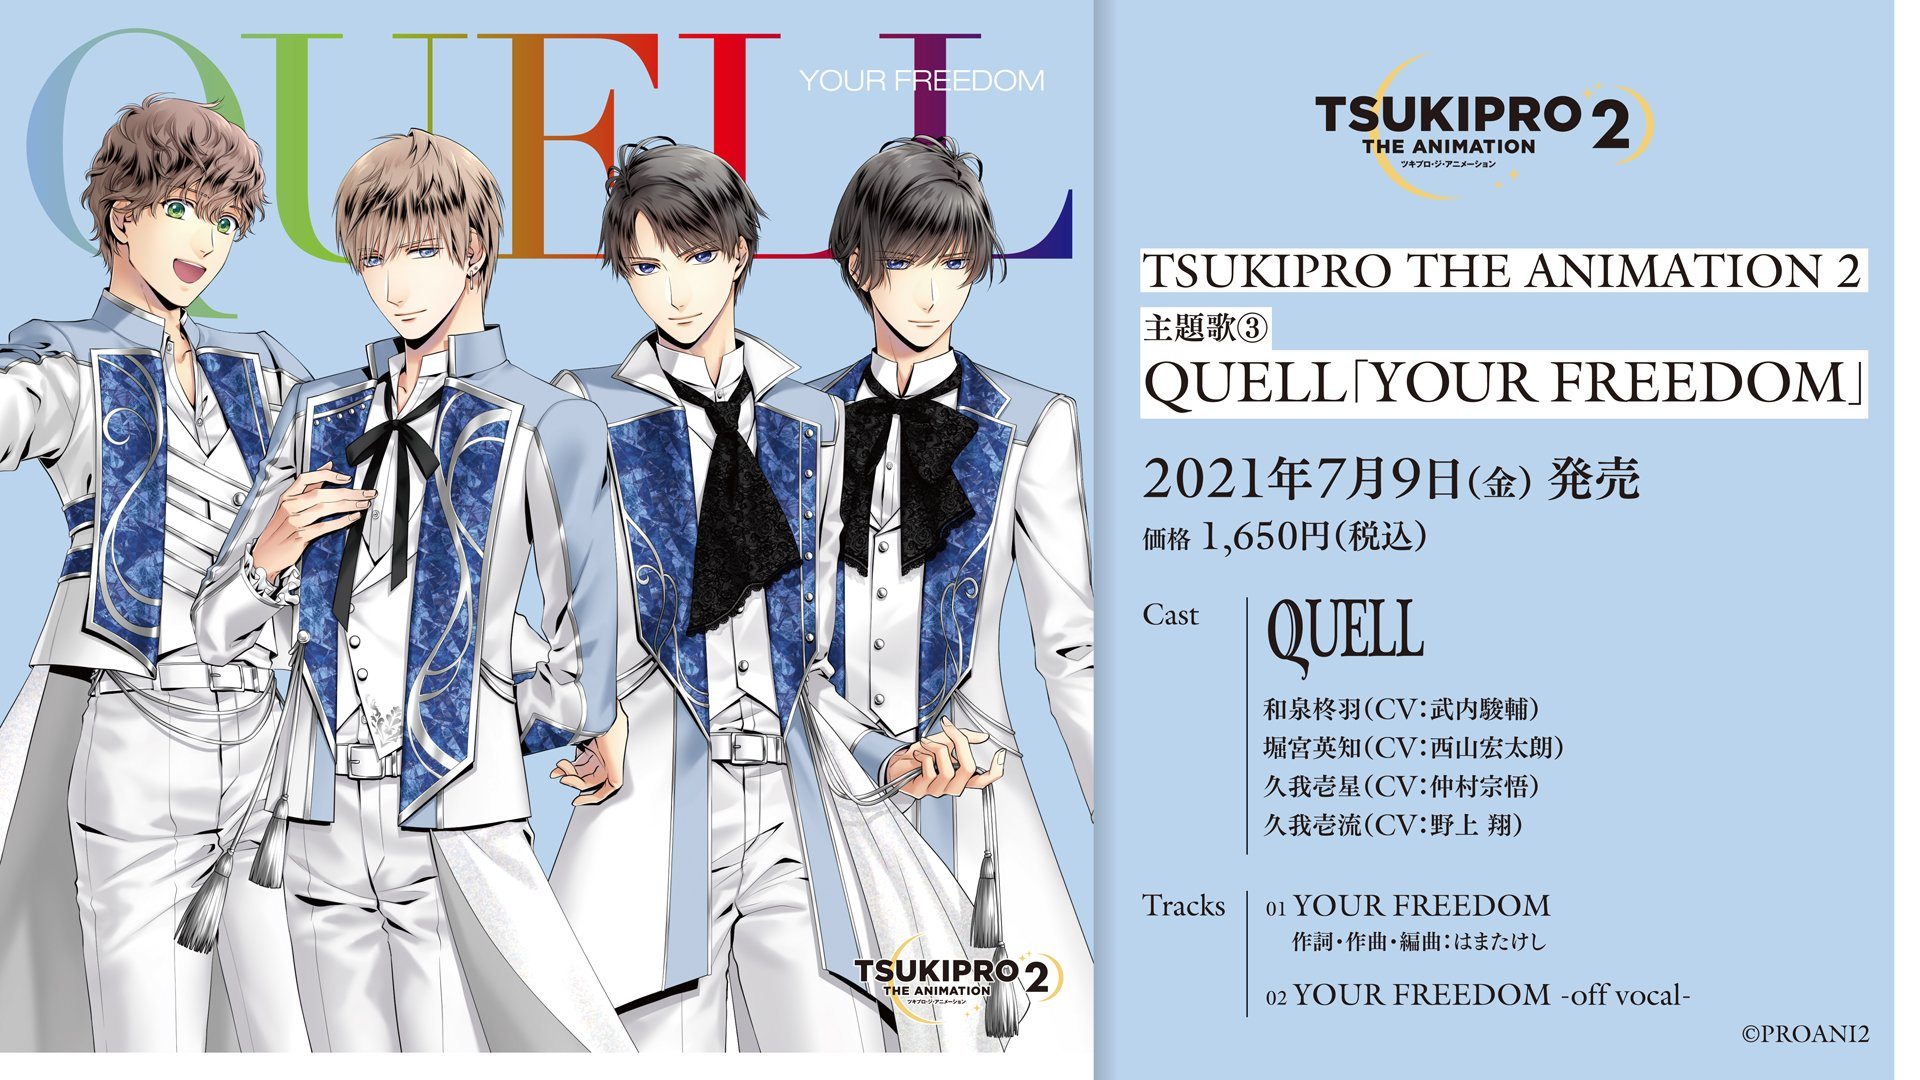 TVアニメ「TSUKIPRO THE ANIMATION 2」主題歌③ QUELL「YOUR FREEDOM」